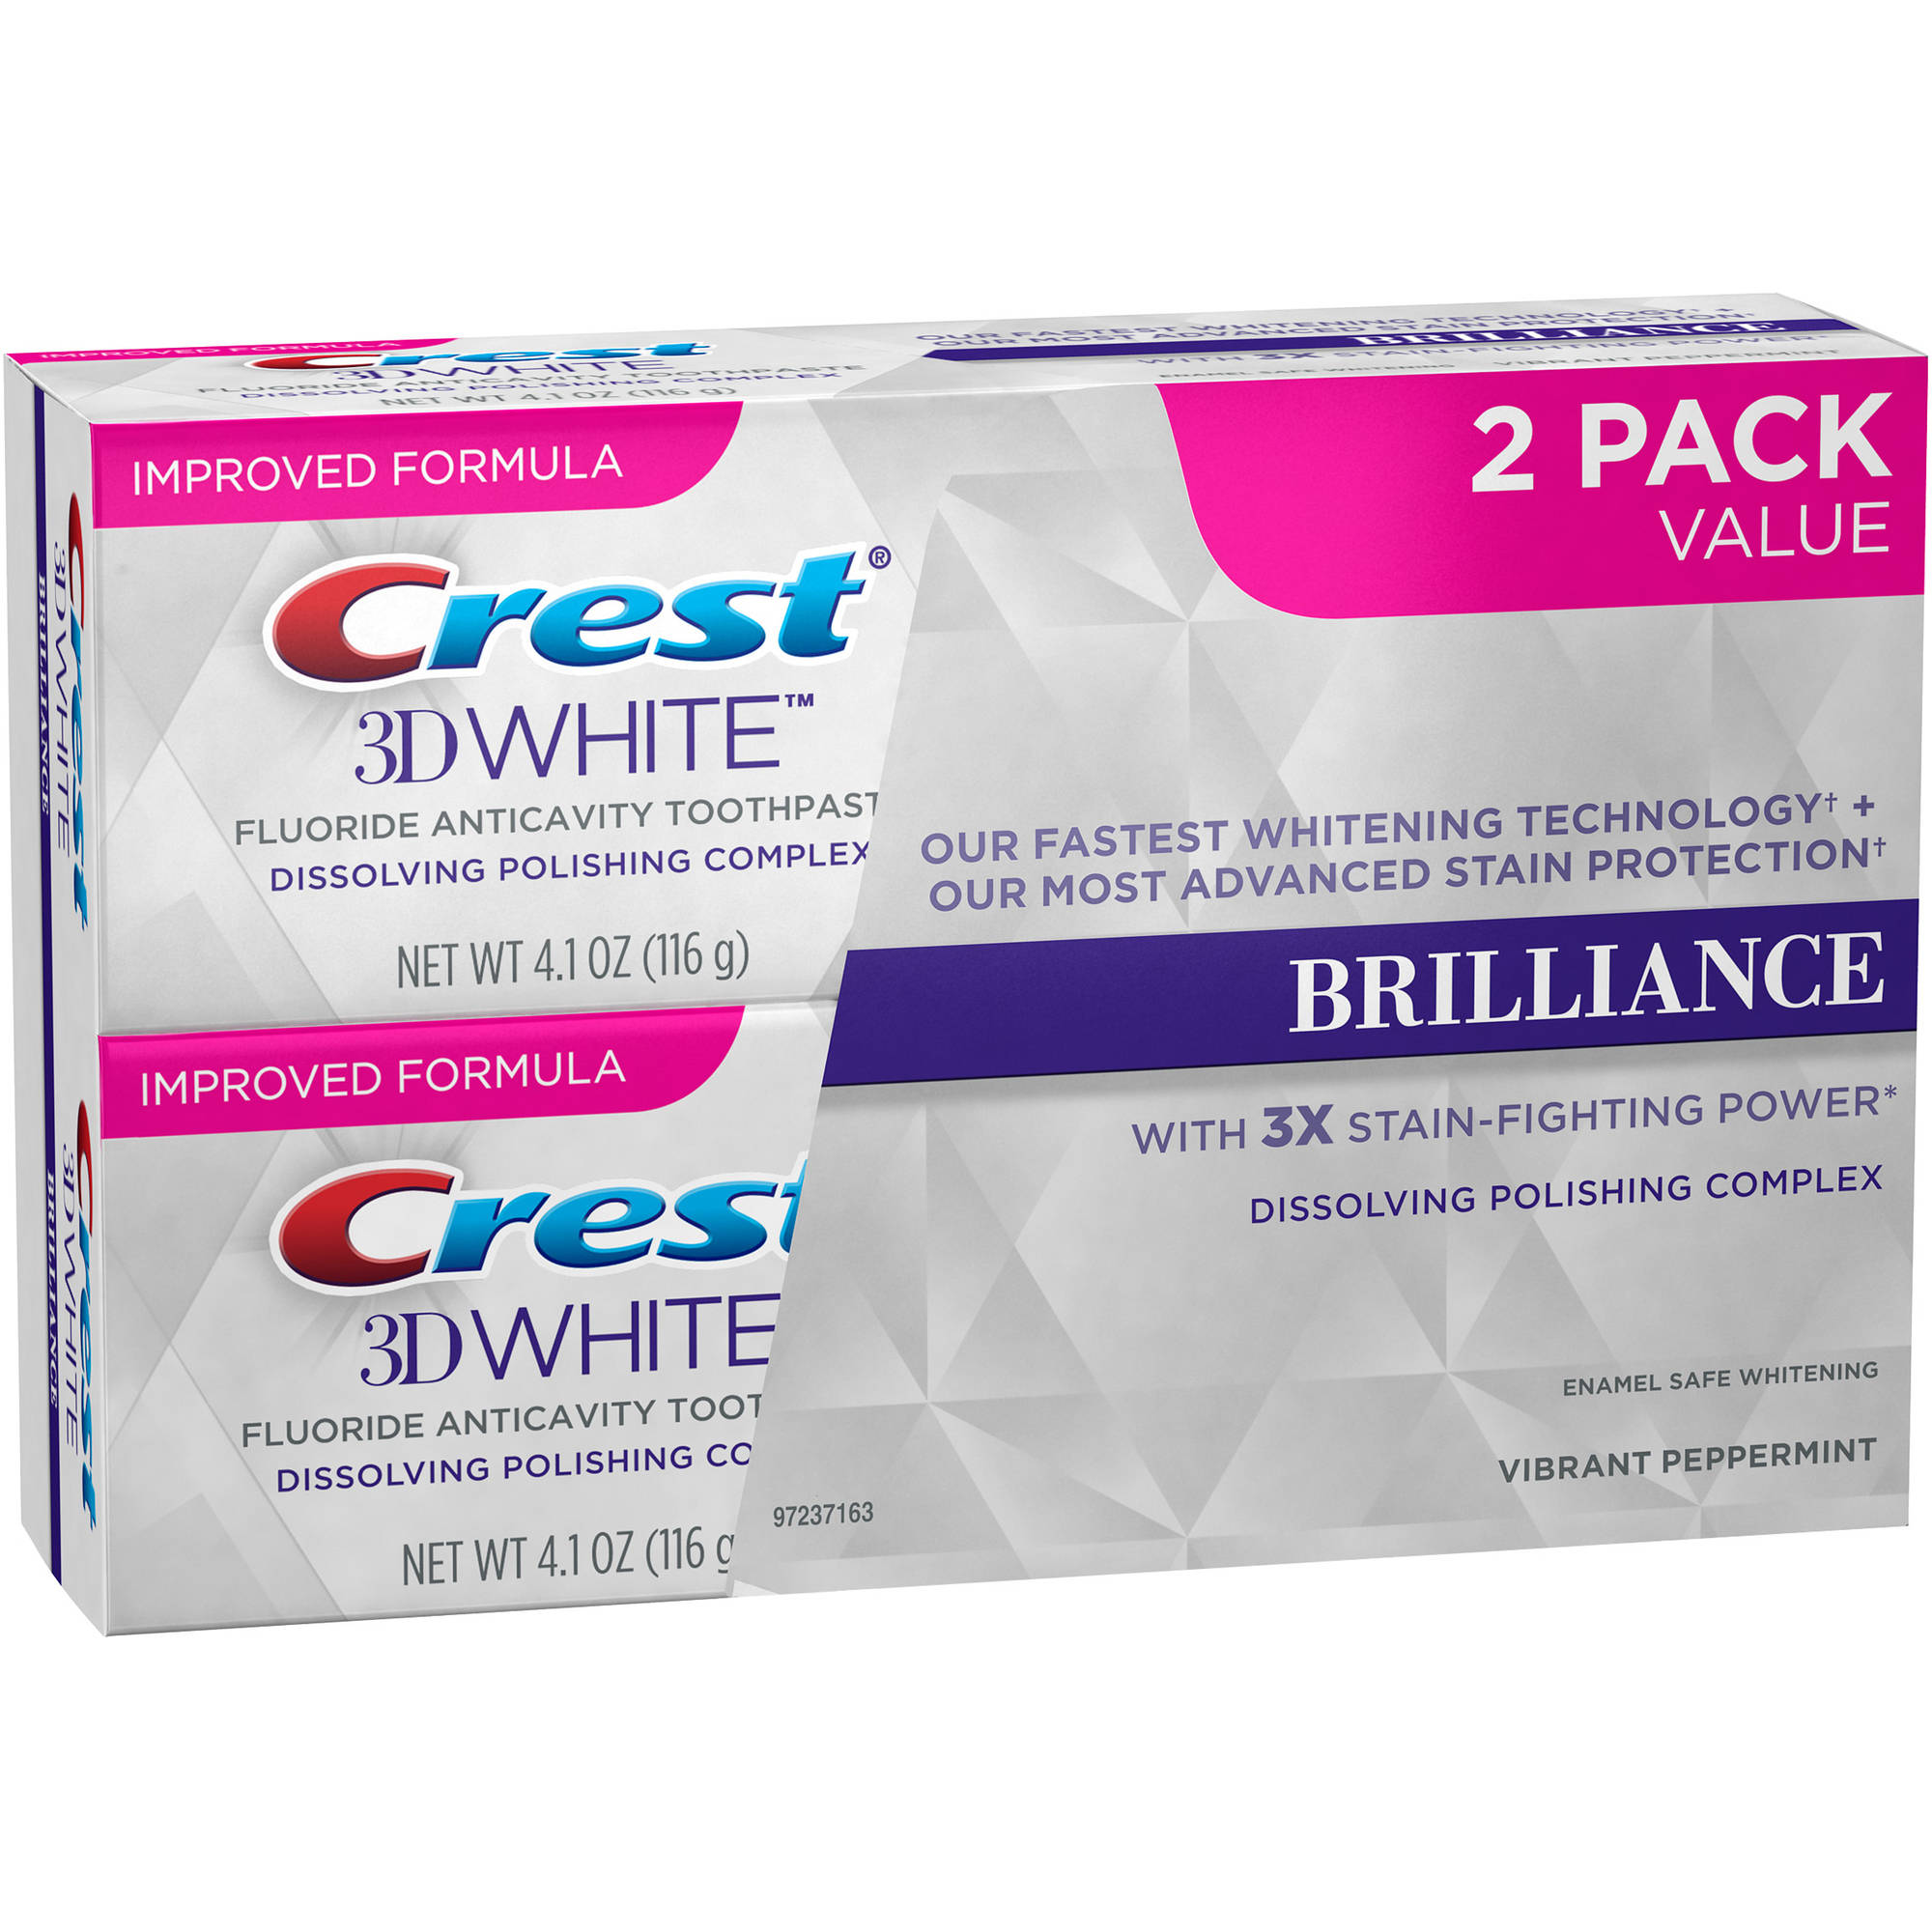 Crest 3D White Mesmerizing Mint Fluoride Anticavity Toothpaste, 4.1 oz, (Pack of 2)